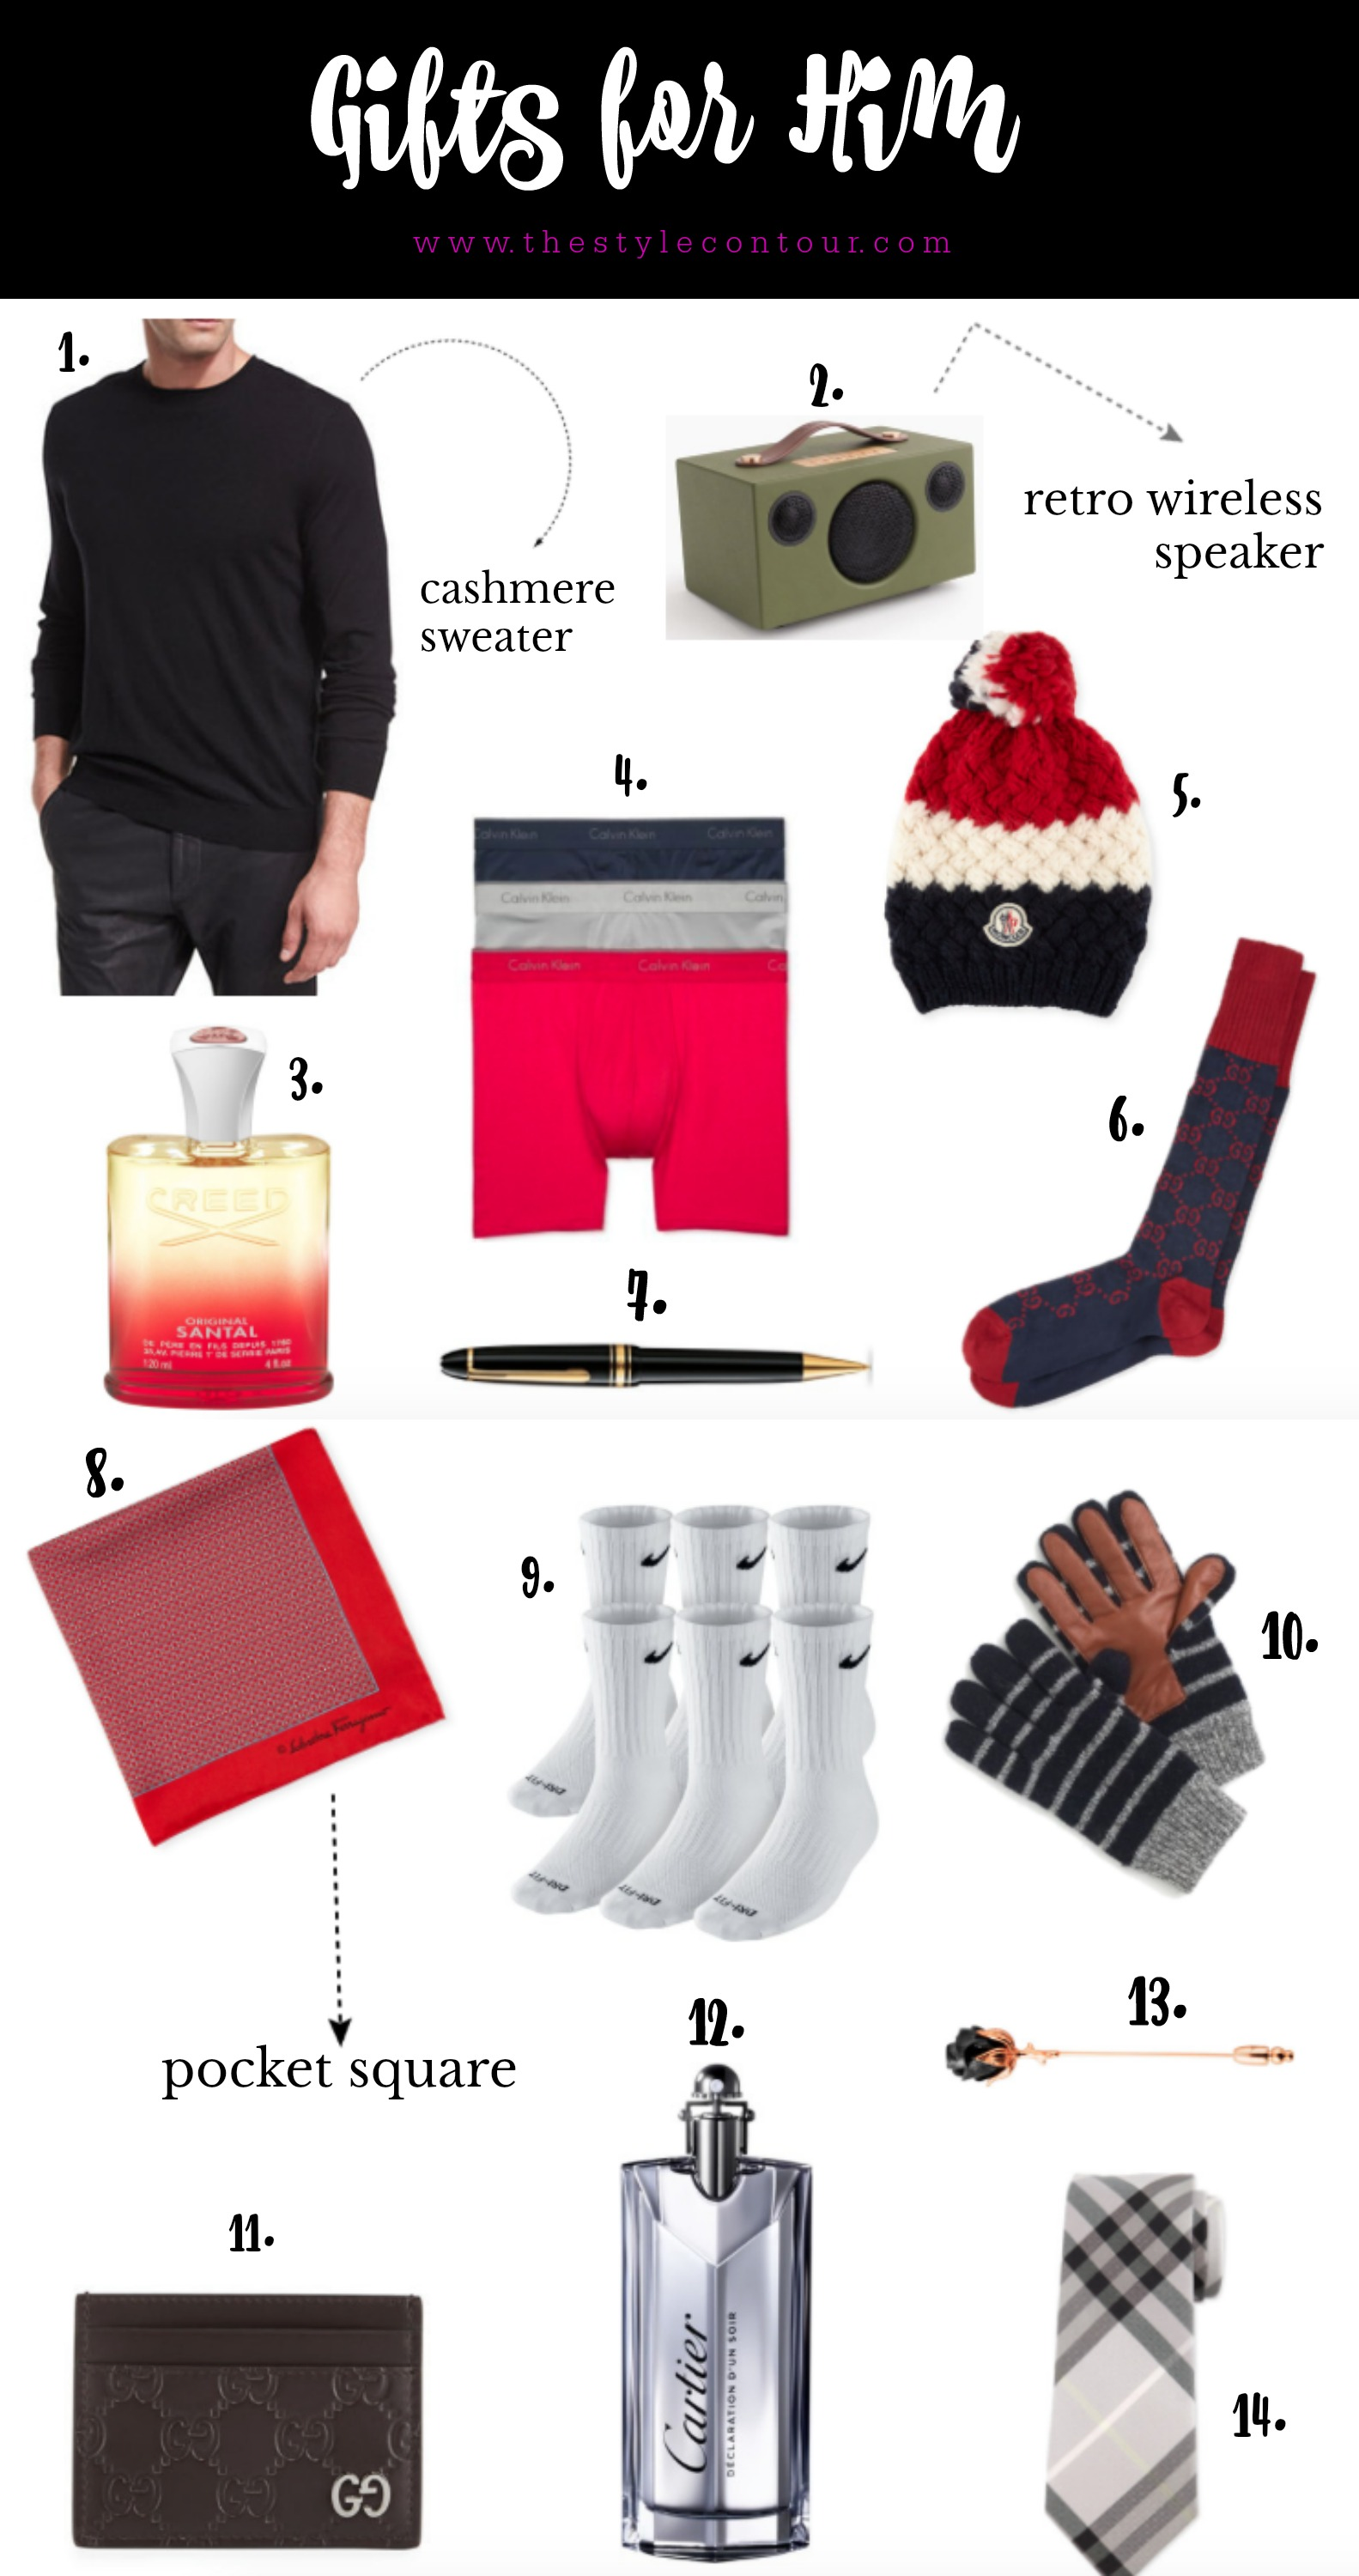 Gift Ideas for Him 2017 The Style Contour